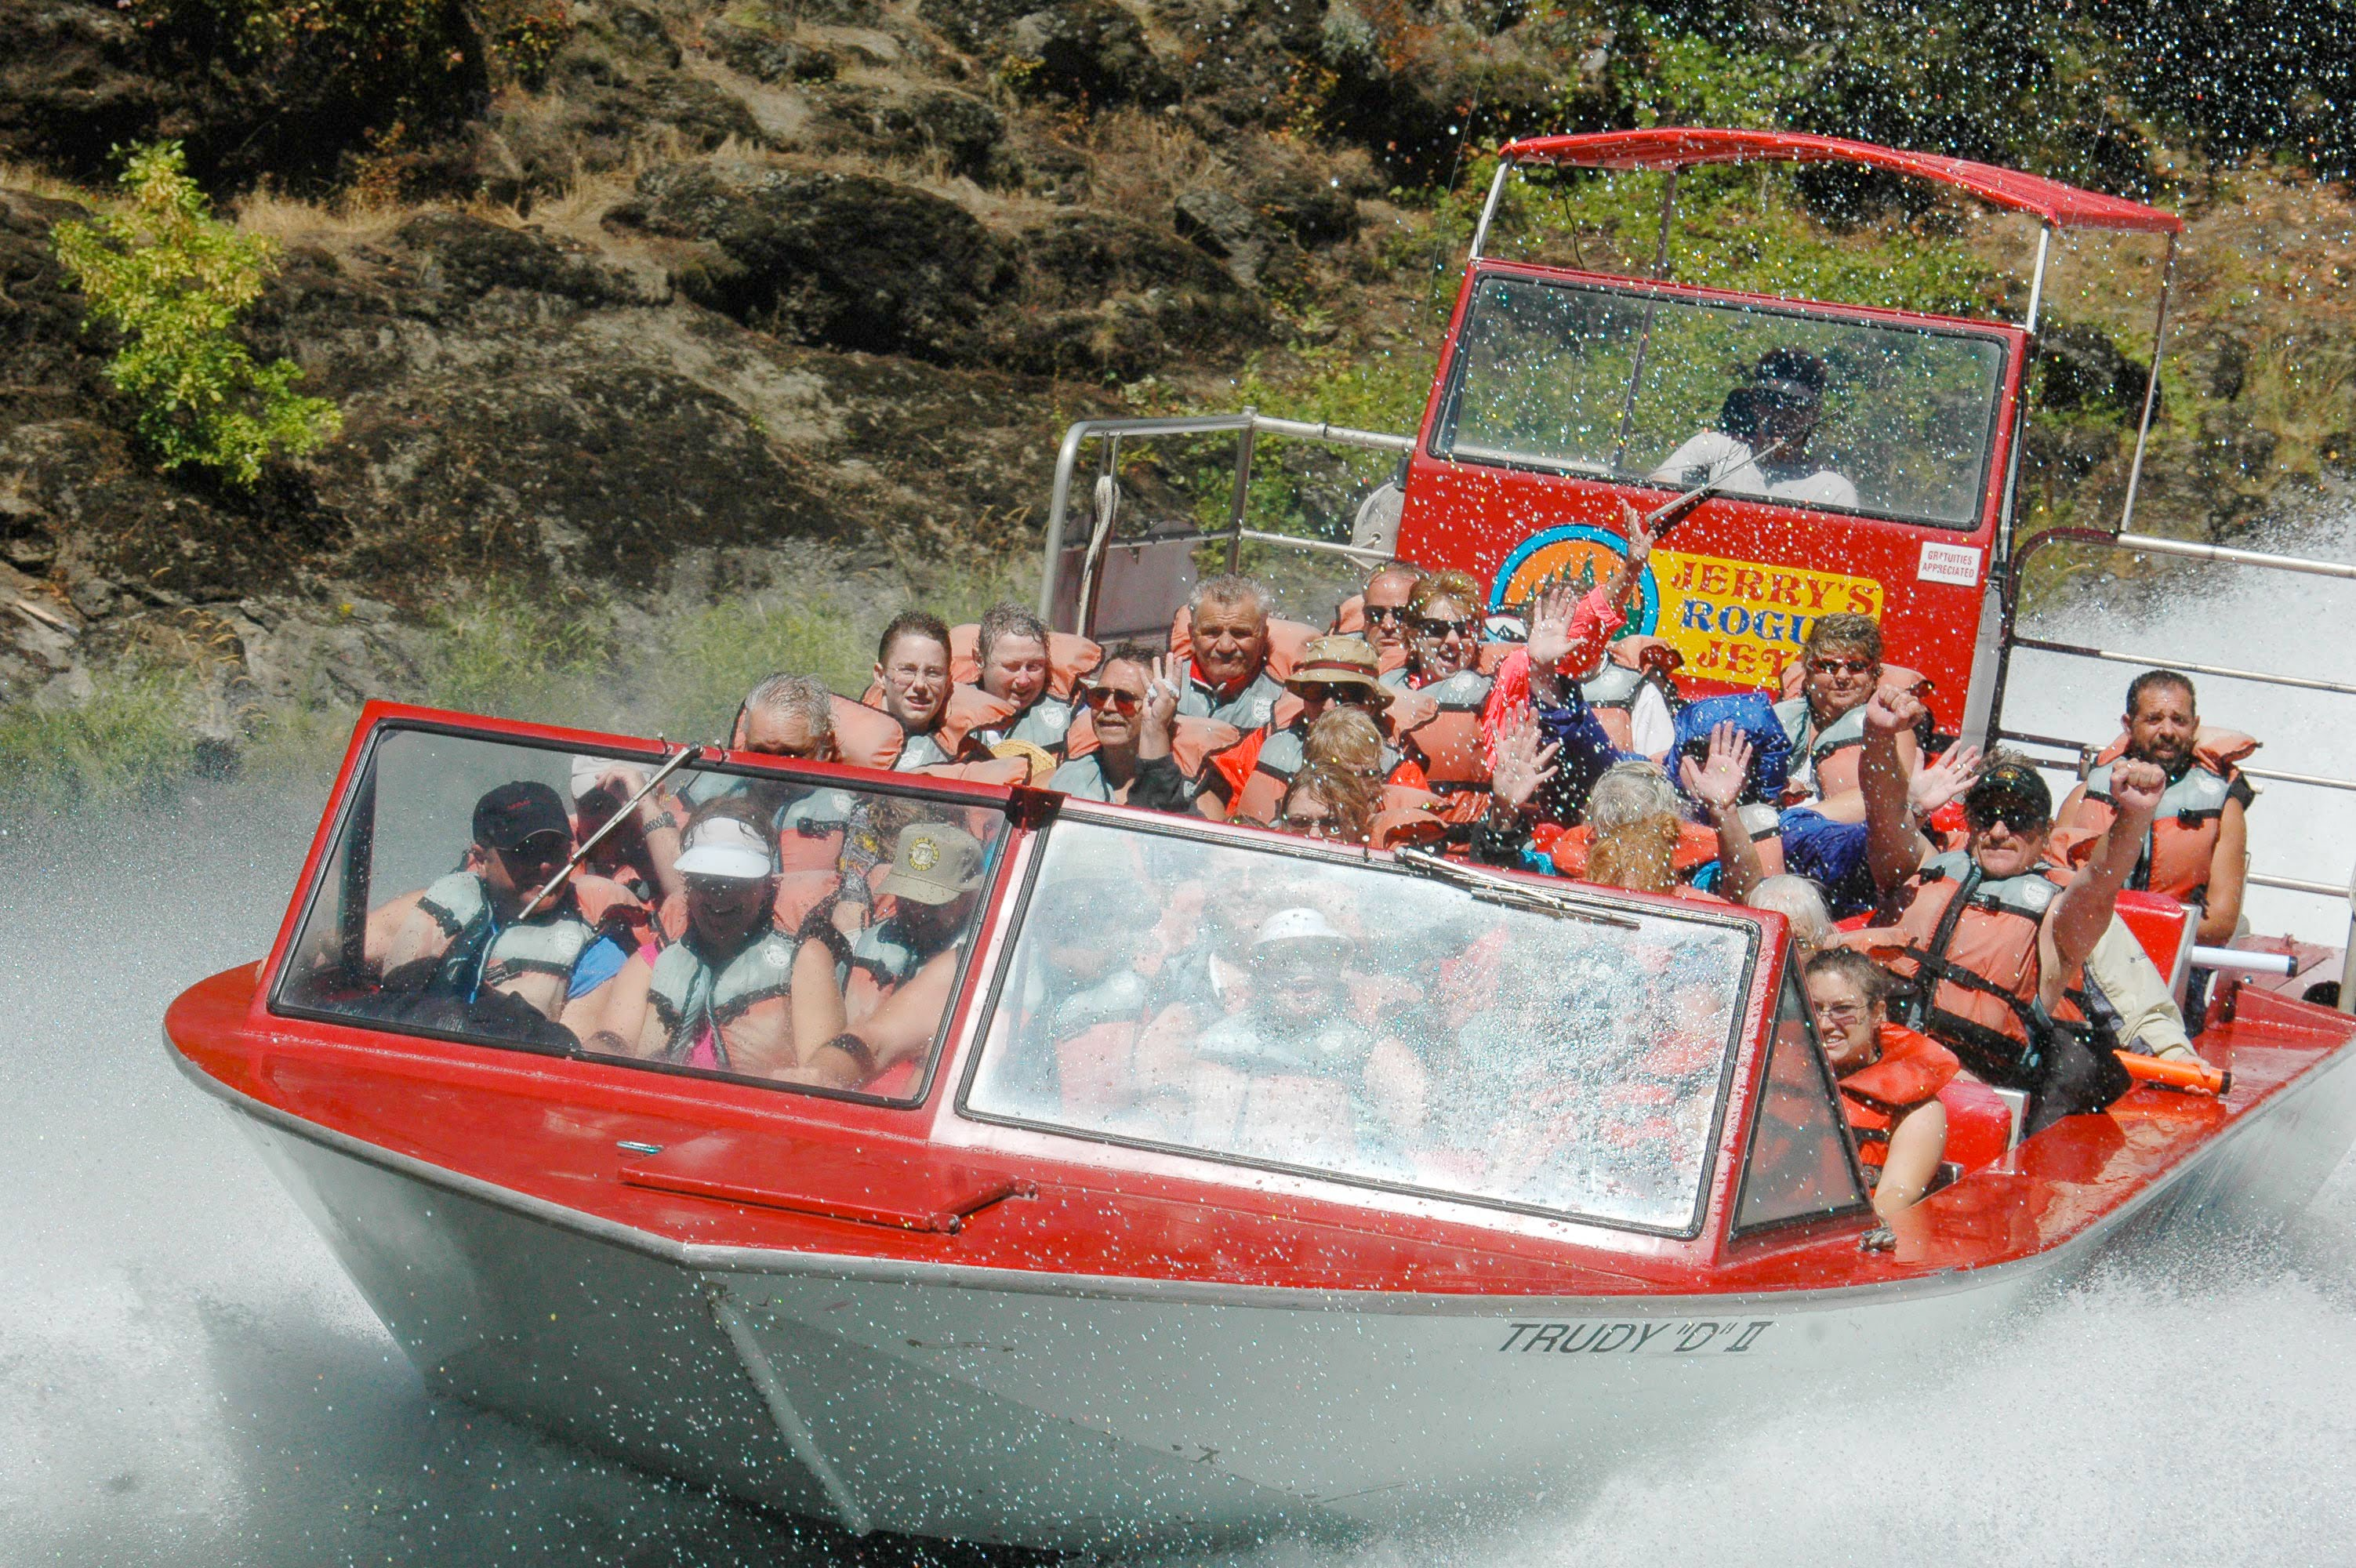 Jerry's Jet Boat ride